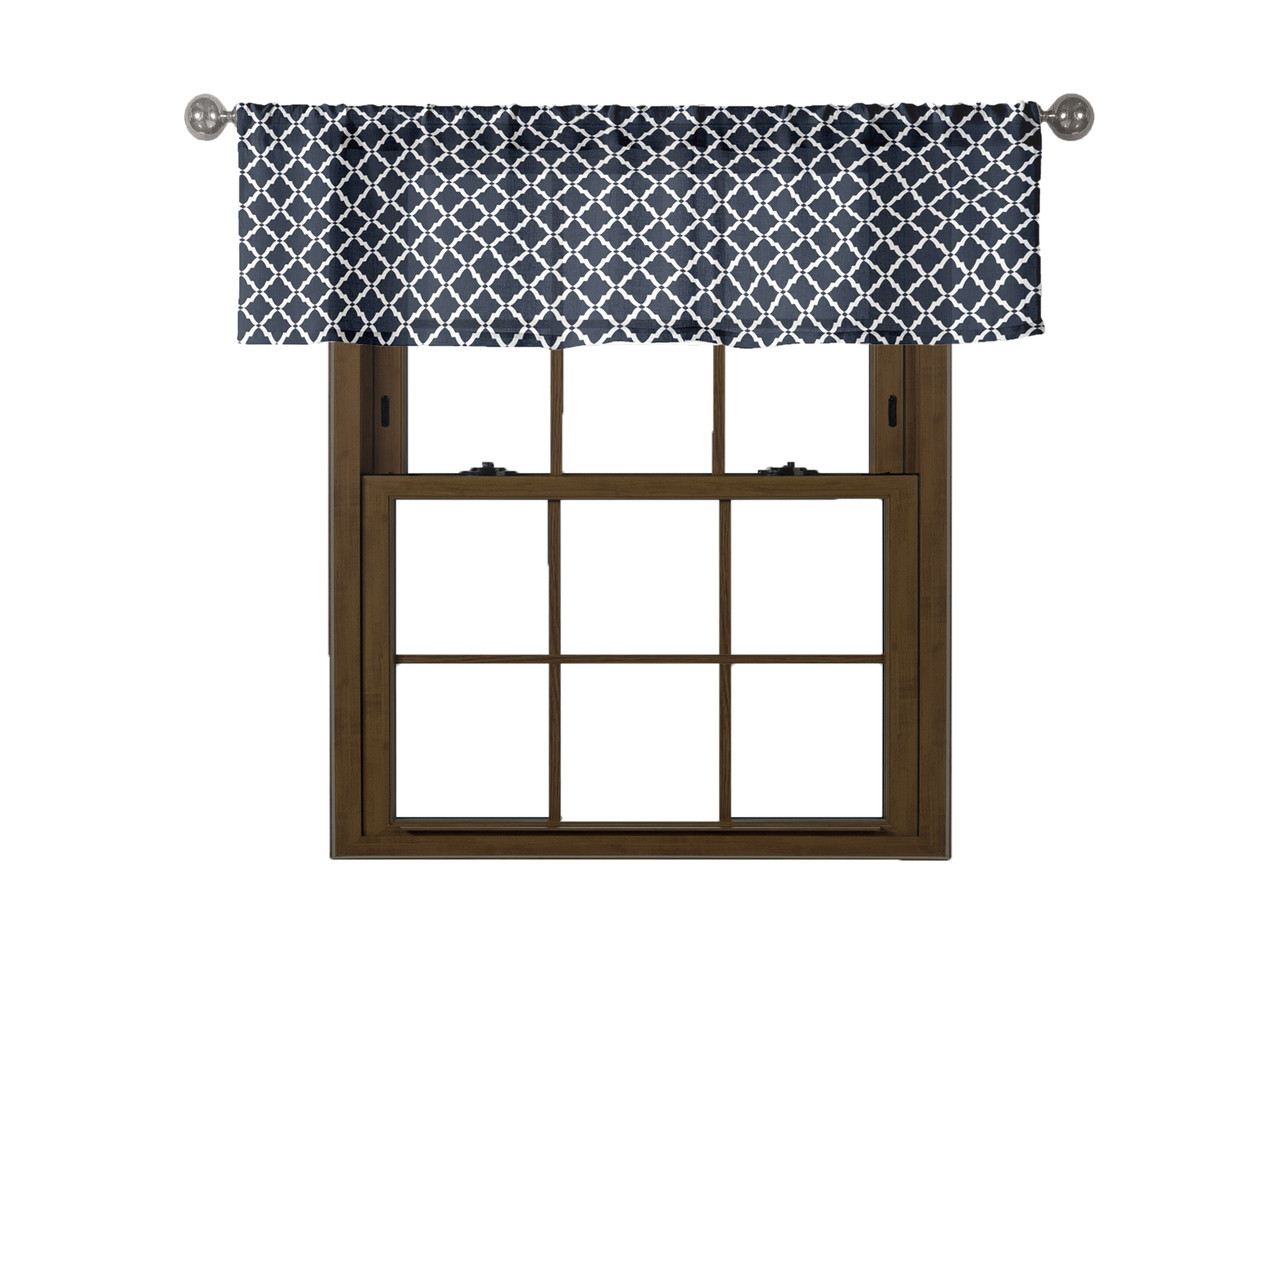 Bathroom And More Collection Navy White 100 Cotton Window Curtain Valance Moroccan Tile Design 58in W X 15in L My Infinity Store